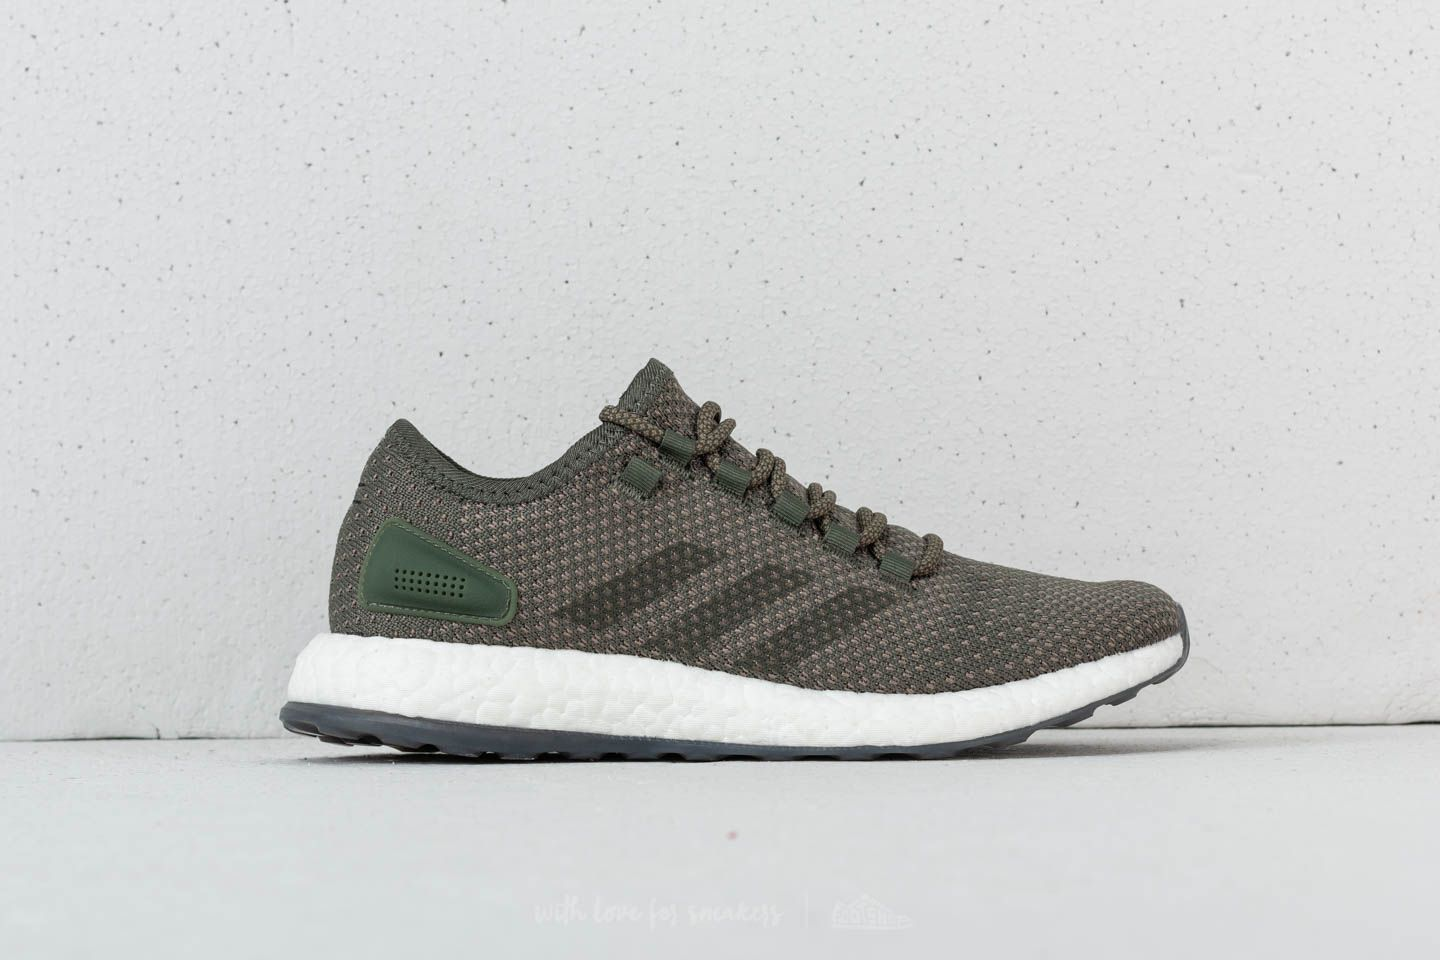 6a12d22f0070e ... promo code for adidas pureboost clima base green night cargo trace  cargo at a great price